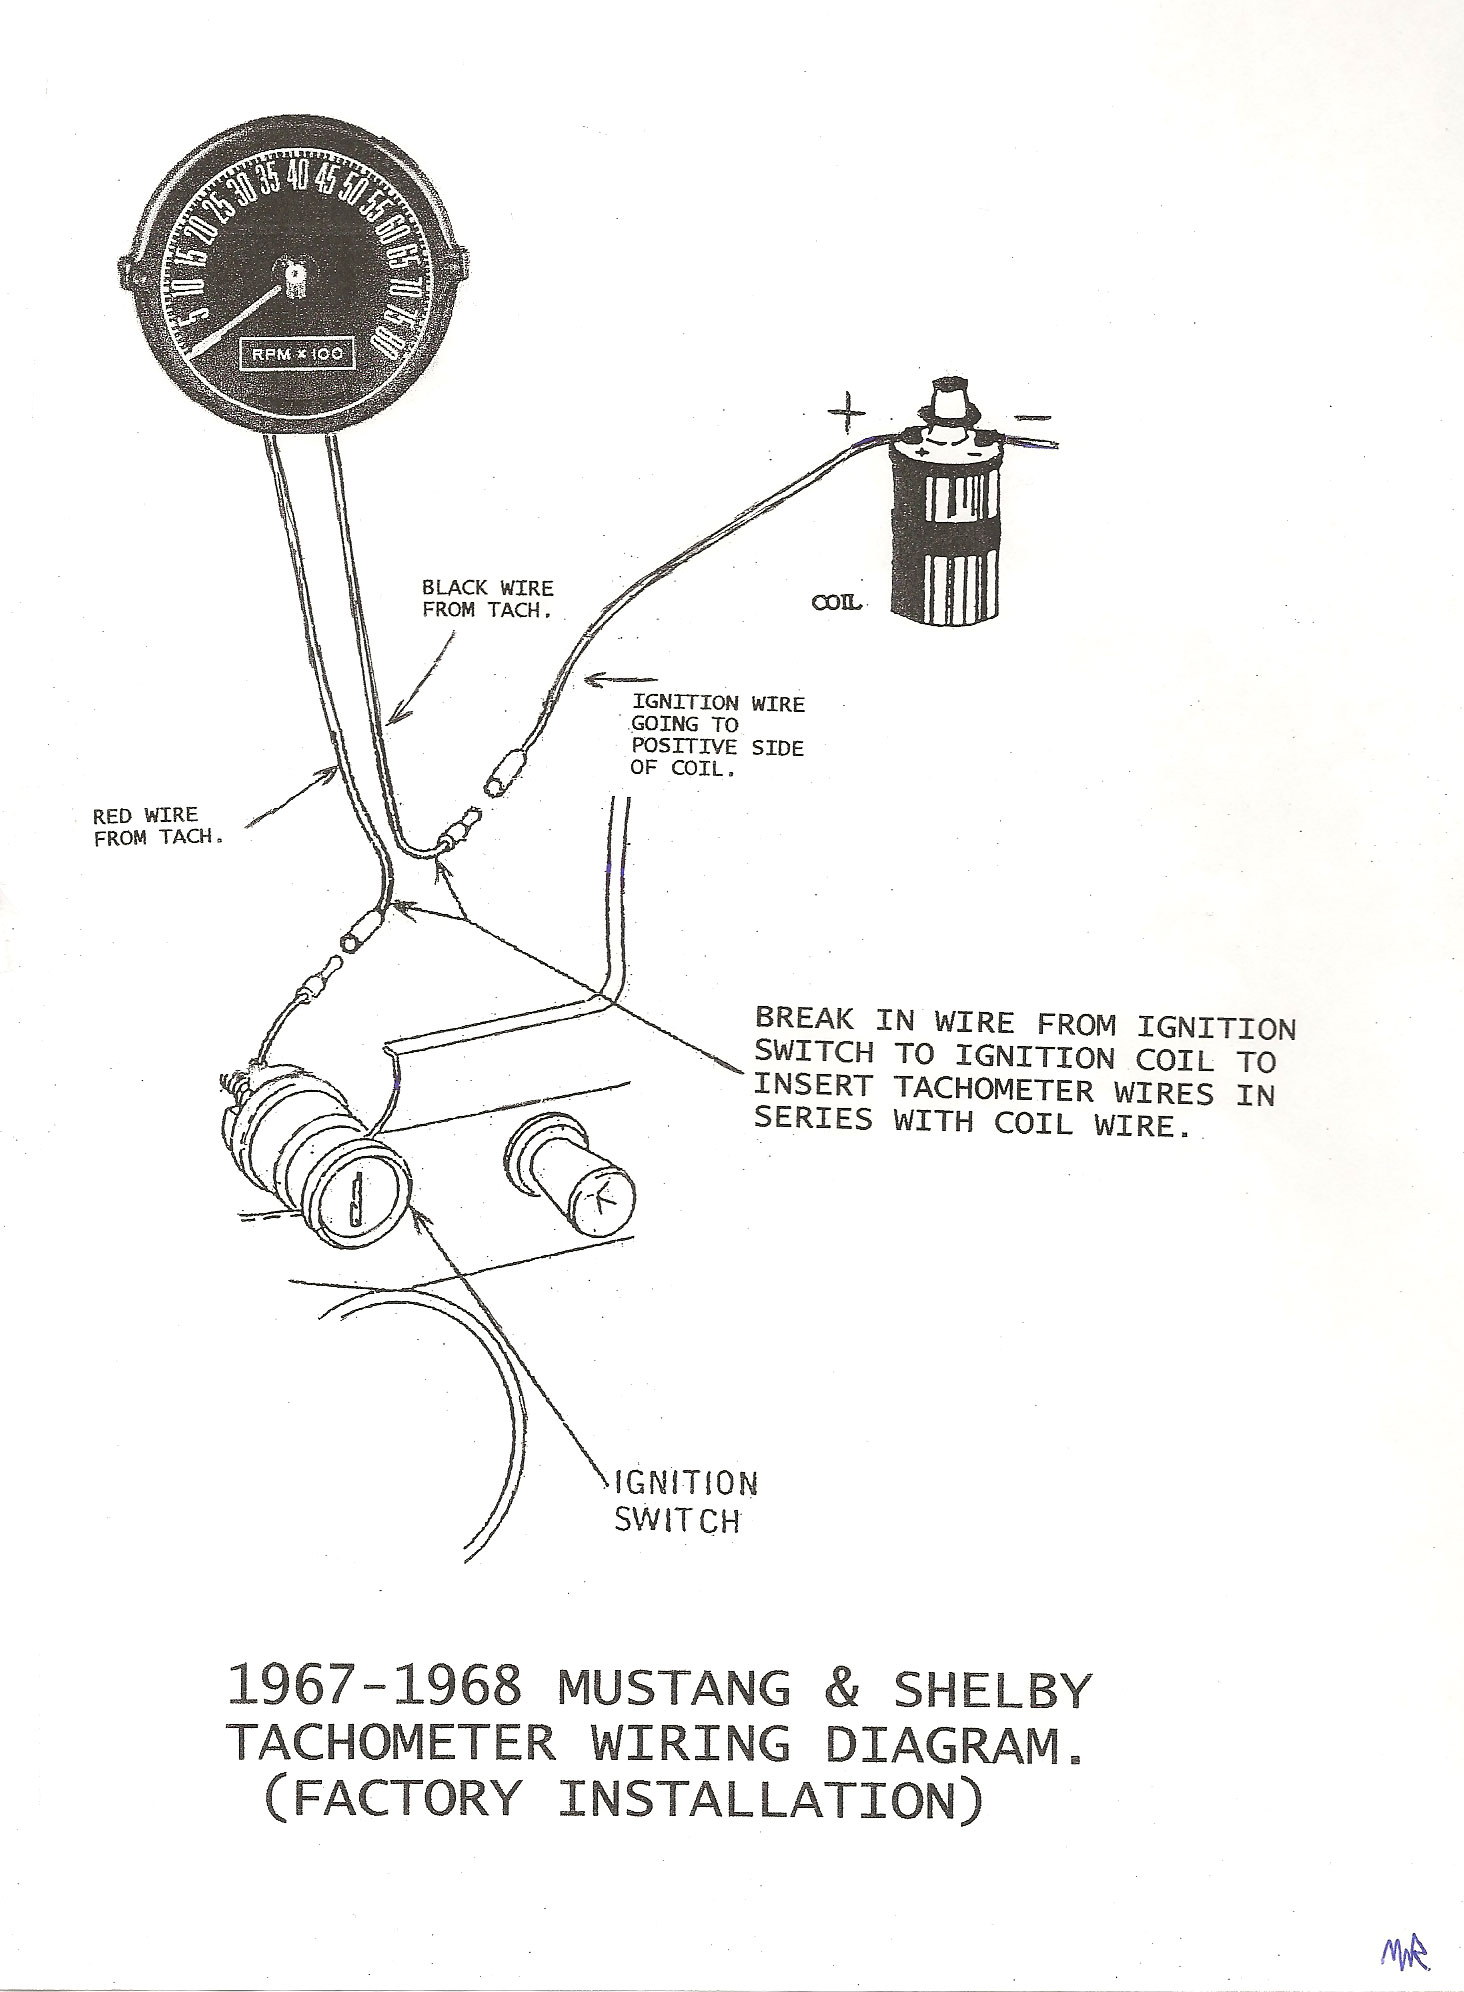 Tech info 1967 68 mustang shelby factory tach wiring diagram jpeg image sciox Gallery